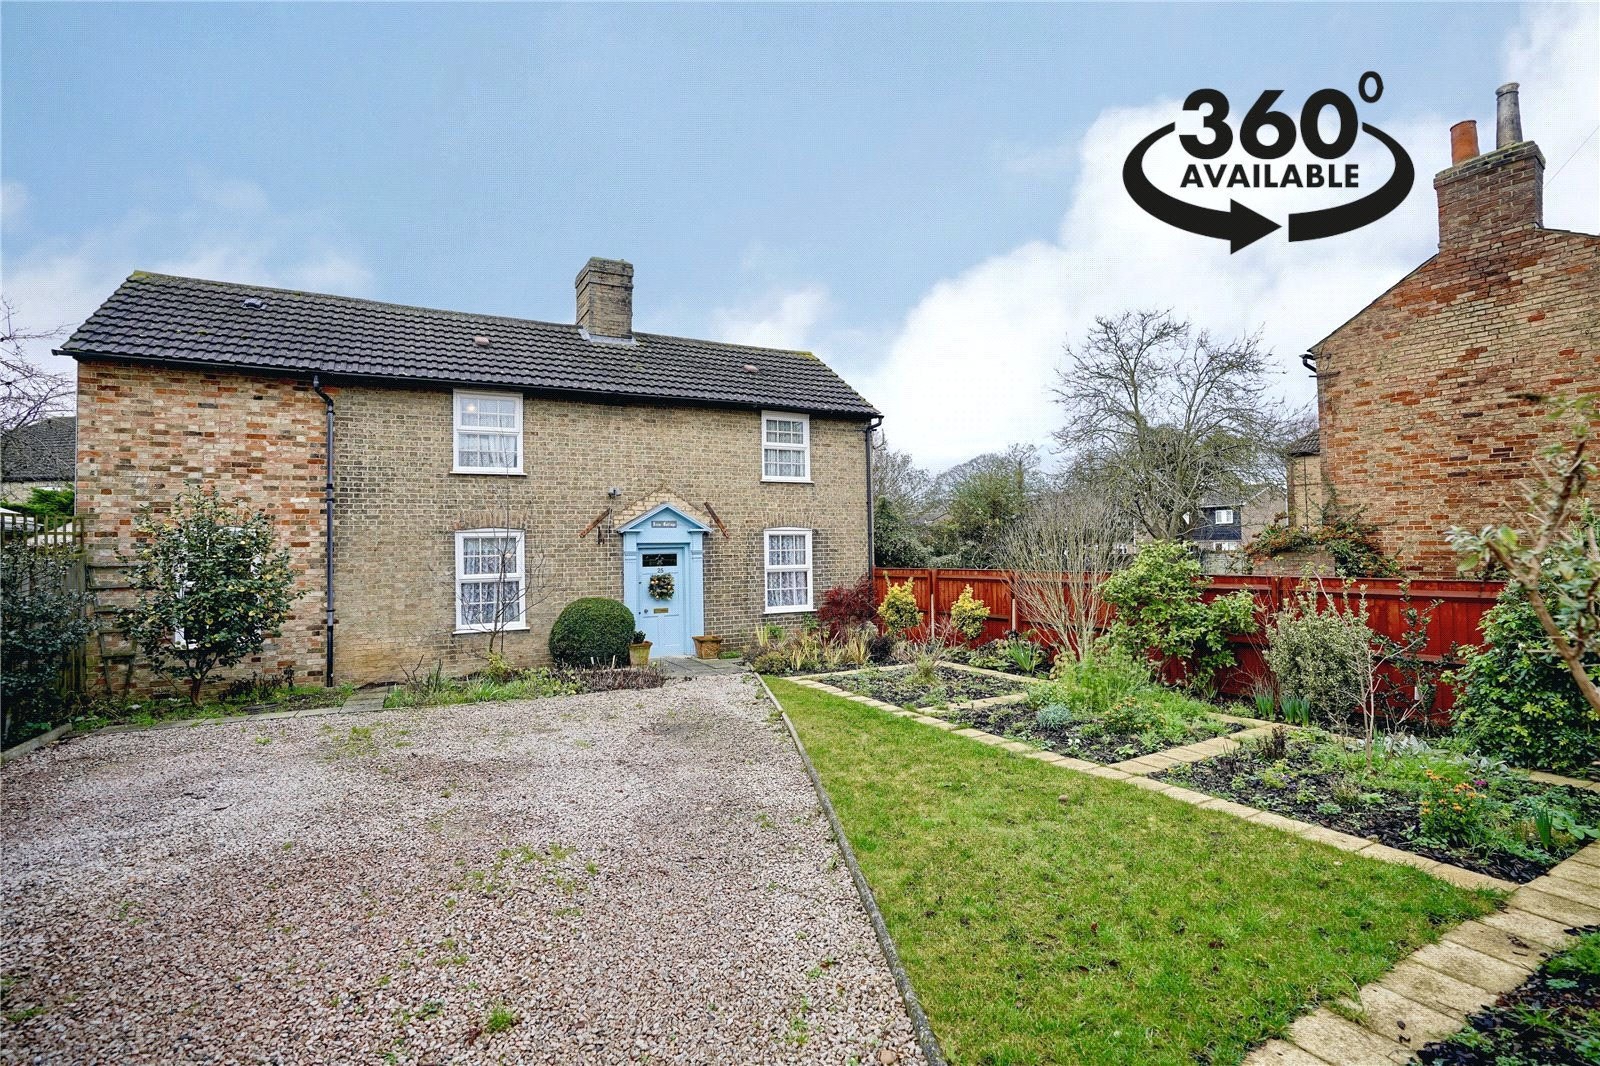 4 bed house for sale in Sandy, Church Path, SG19 1ET  - Property Image 1